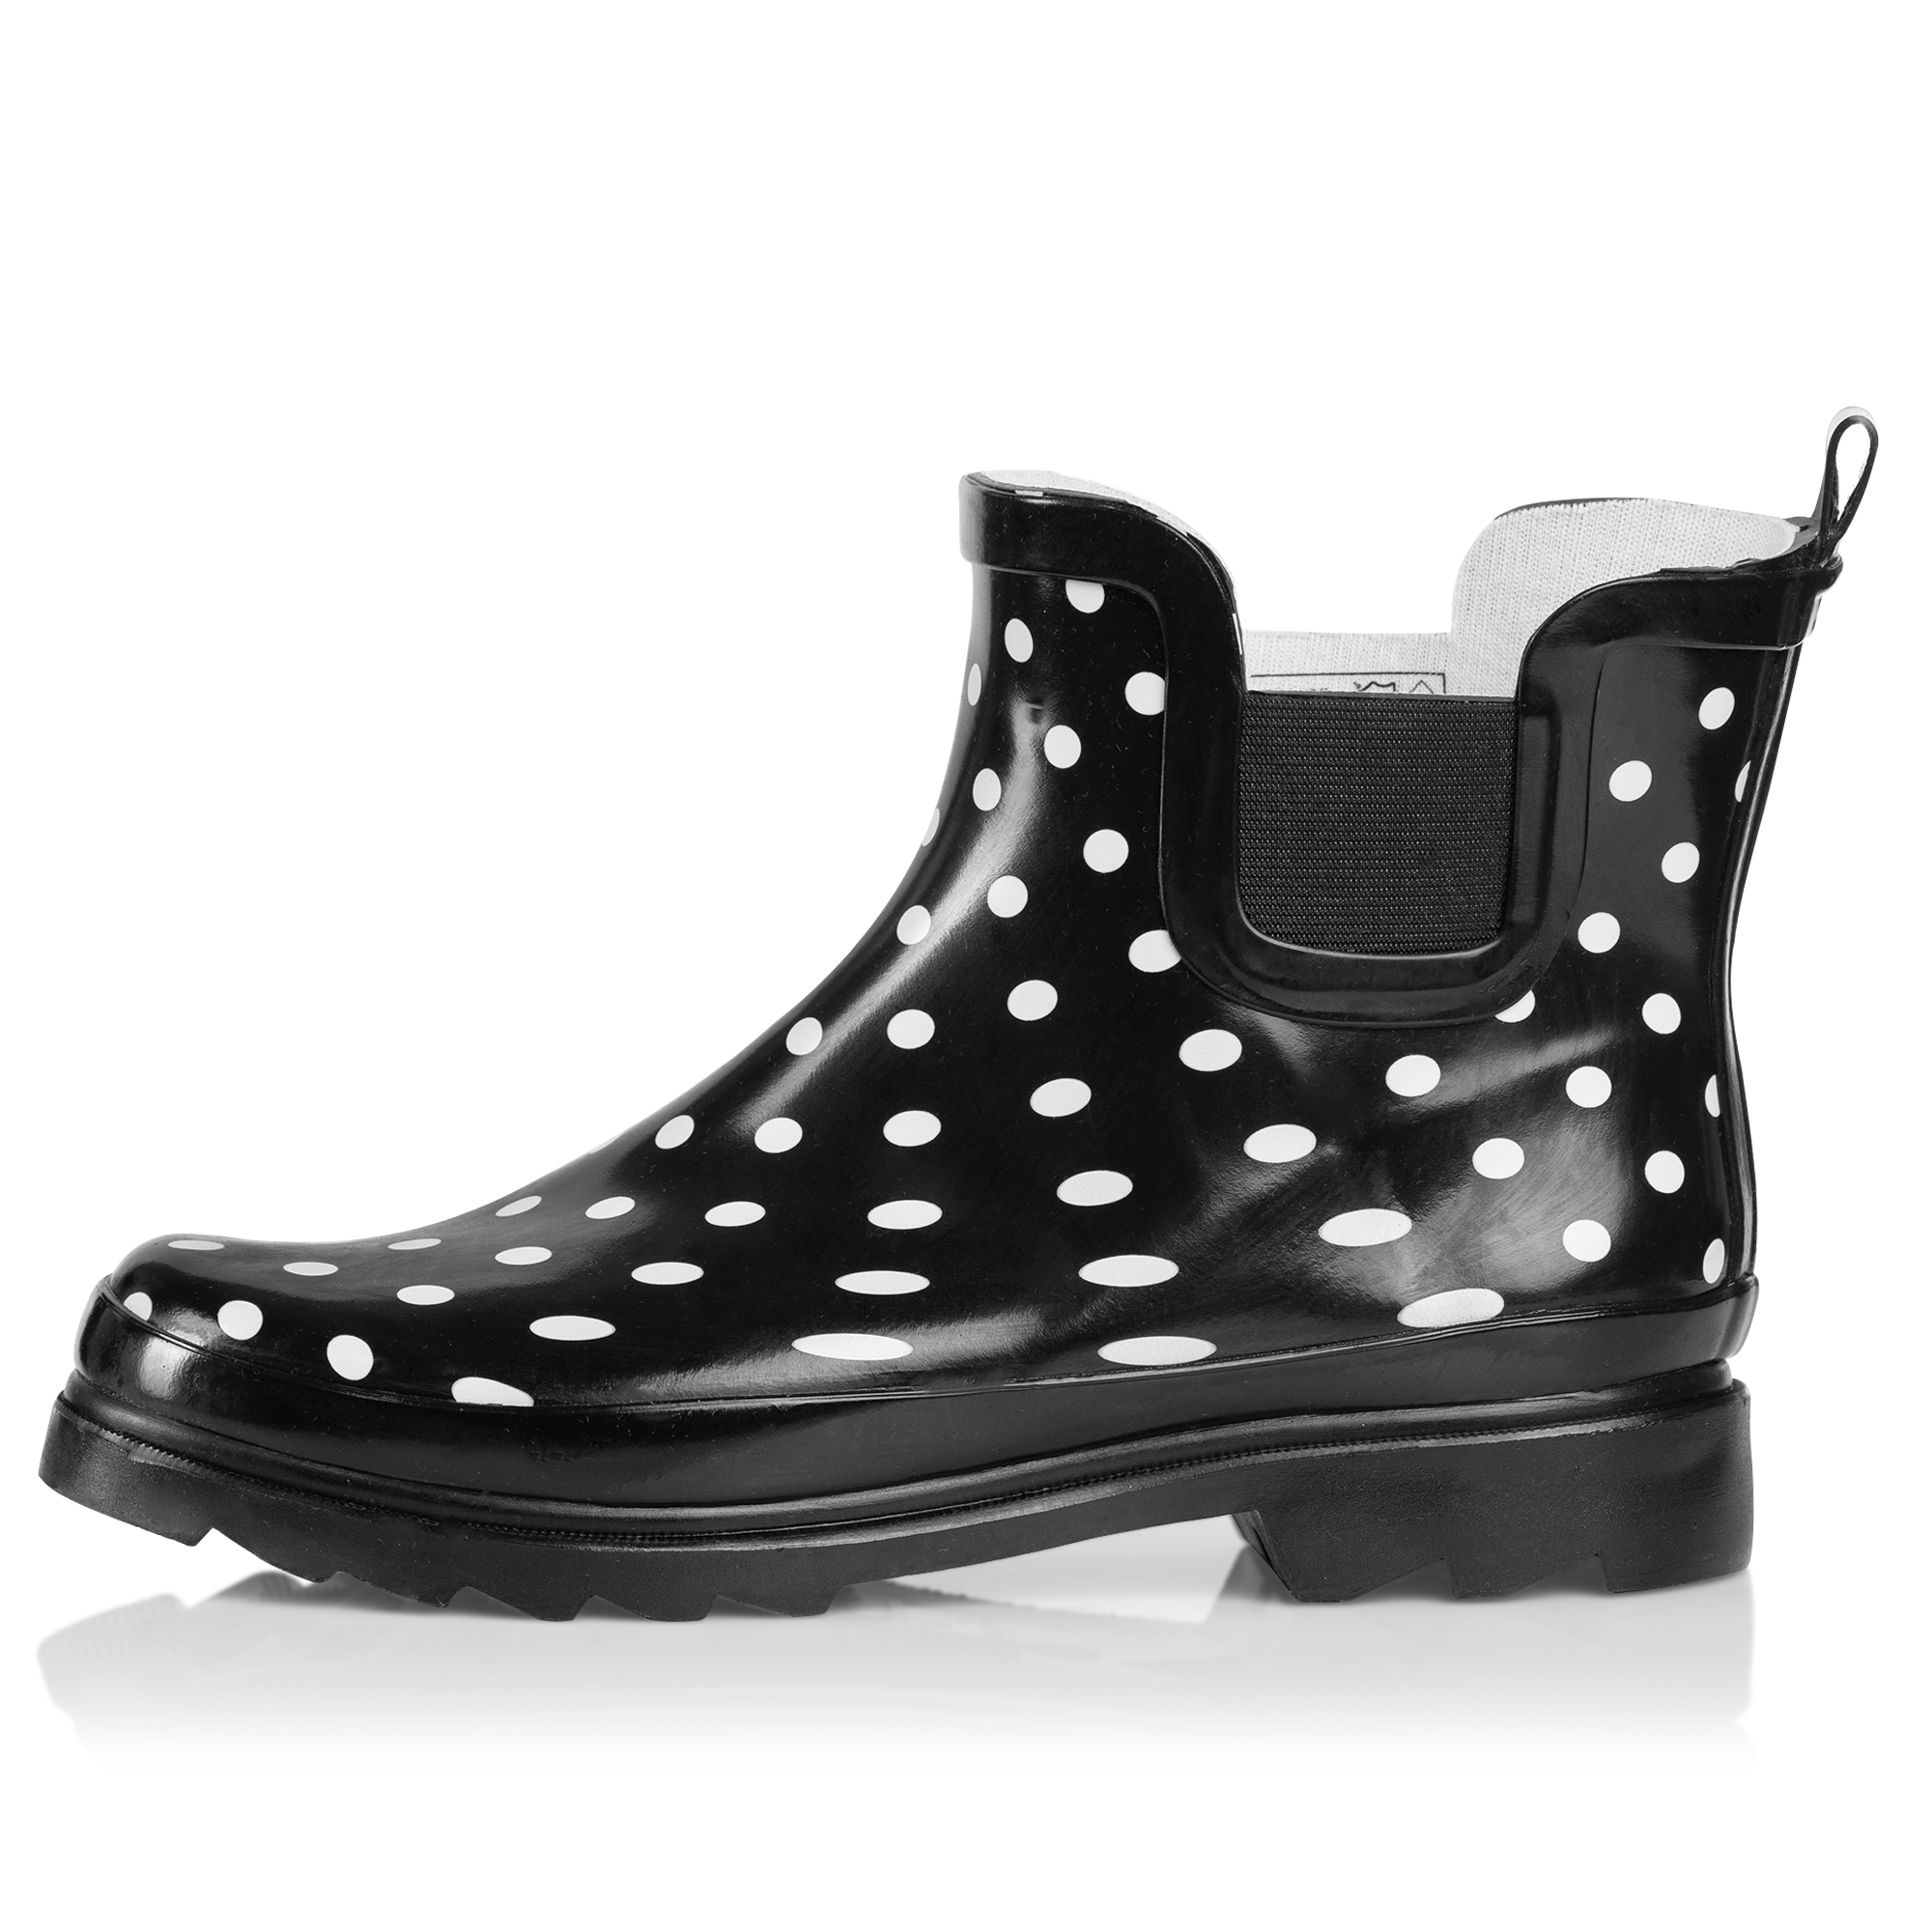 Womens Rain Boots Rubber Short Ankle Wellies wellington Pull On Garden,Size $ Buy It Now +$ shipping. Free Returns. London Fog Piccadilly Pull On Ankle Rain Boot Size 8 See more like this. Henry Ferrara Ankle Rain Boot Size 8. Pre-Owned. $ Buy It Now +$ shipping.